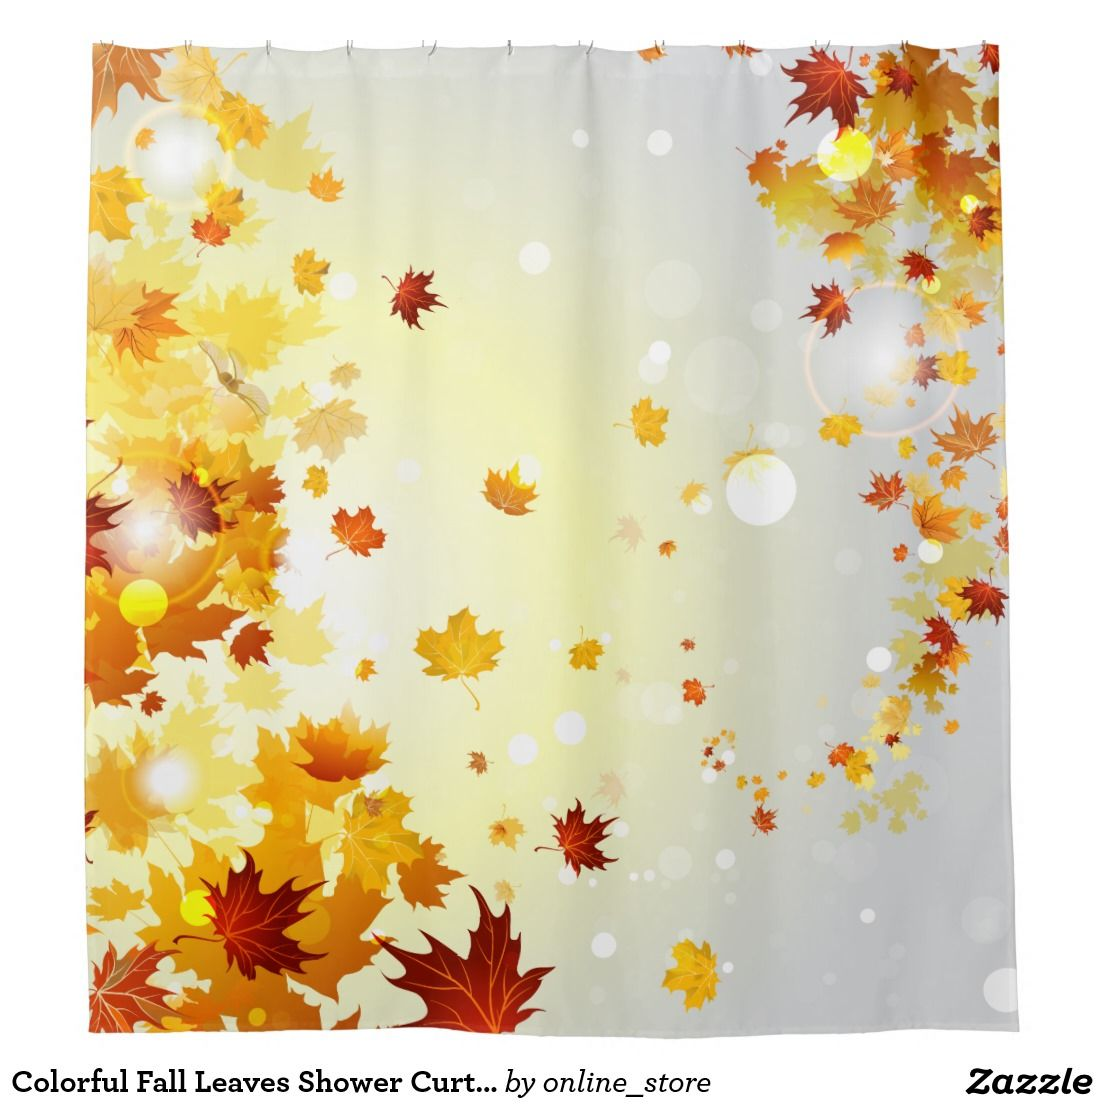 Colorful Fall Leaves Shower Curtain Zazzle Com Autumn Leaves